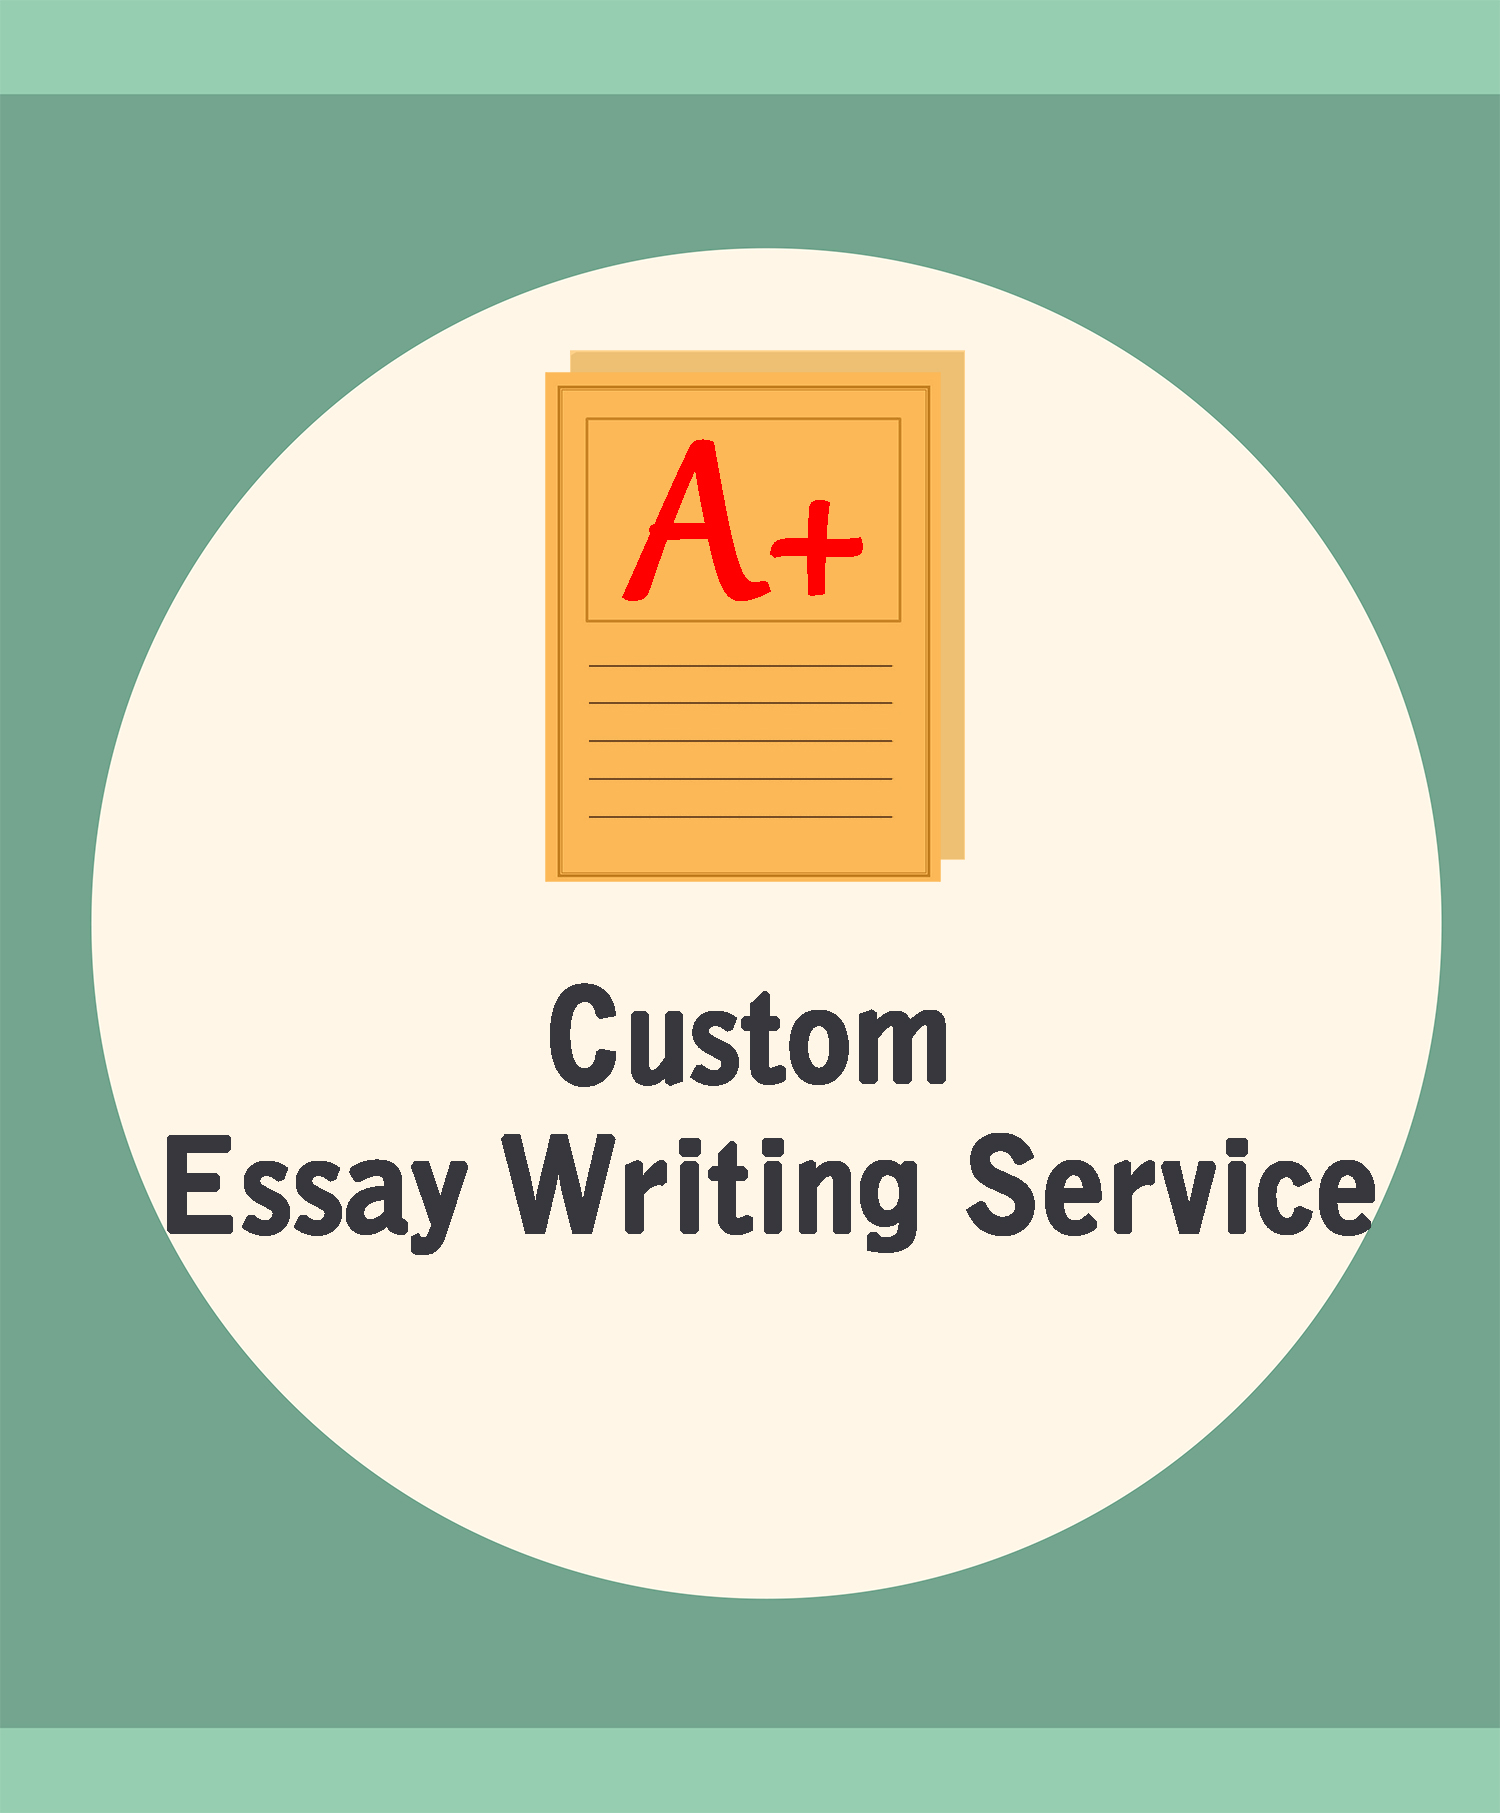 Essay writing services yahoo answers